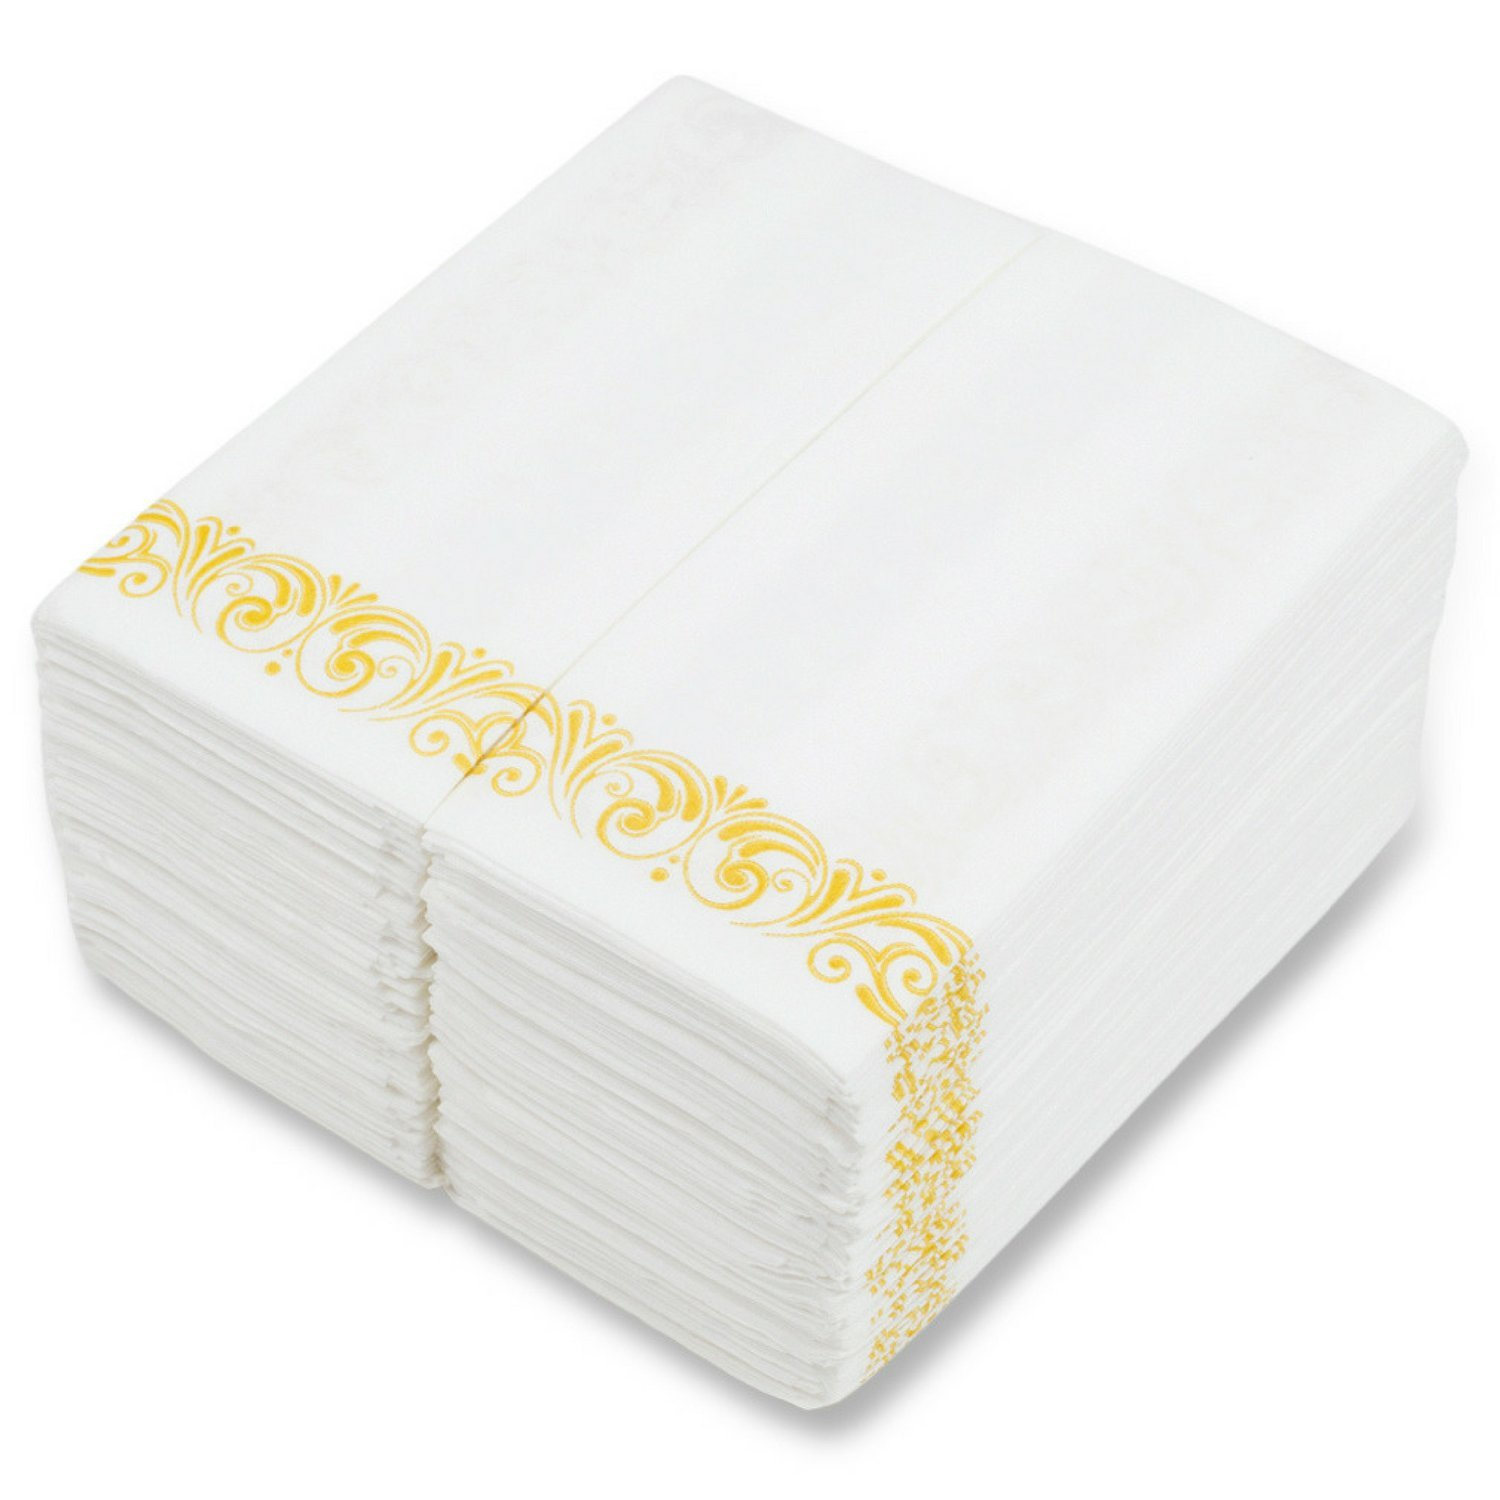 Super Disposable Hand Towels For Bathroom Elegant Guest Towels And Dinner Napkins Made Of 17 X 12 Linen Like Paper With Gold Tone Filigree Borders 100 Download Free Architecture Designs Viewormadebymaigaardcom